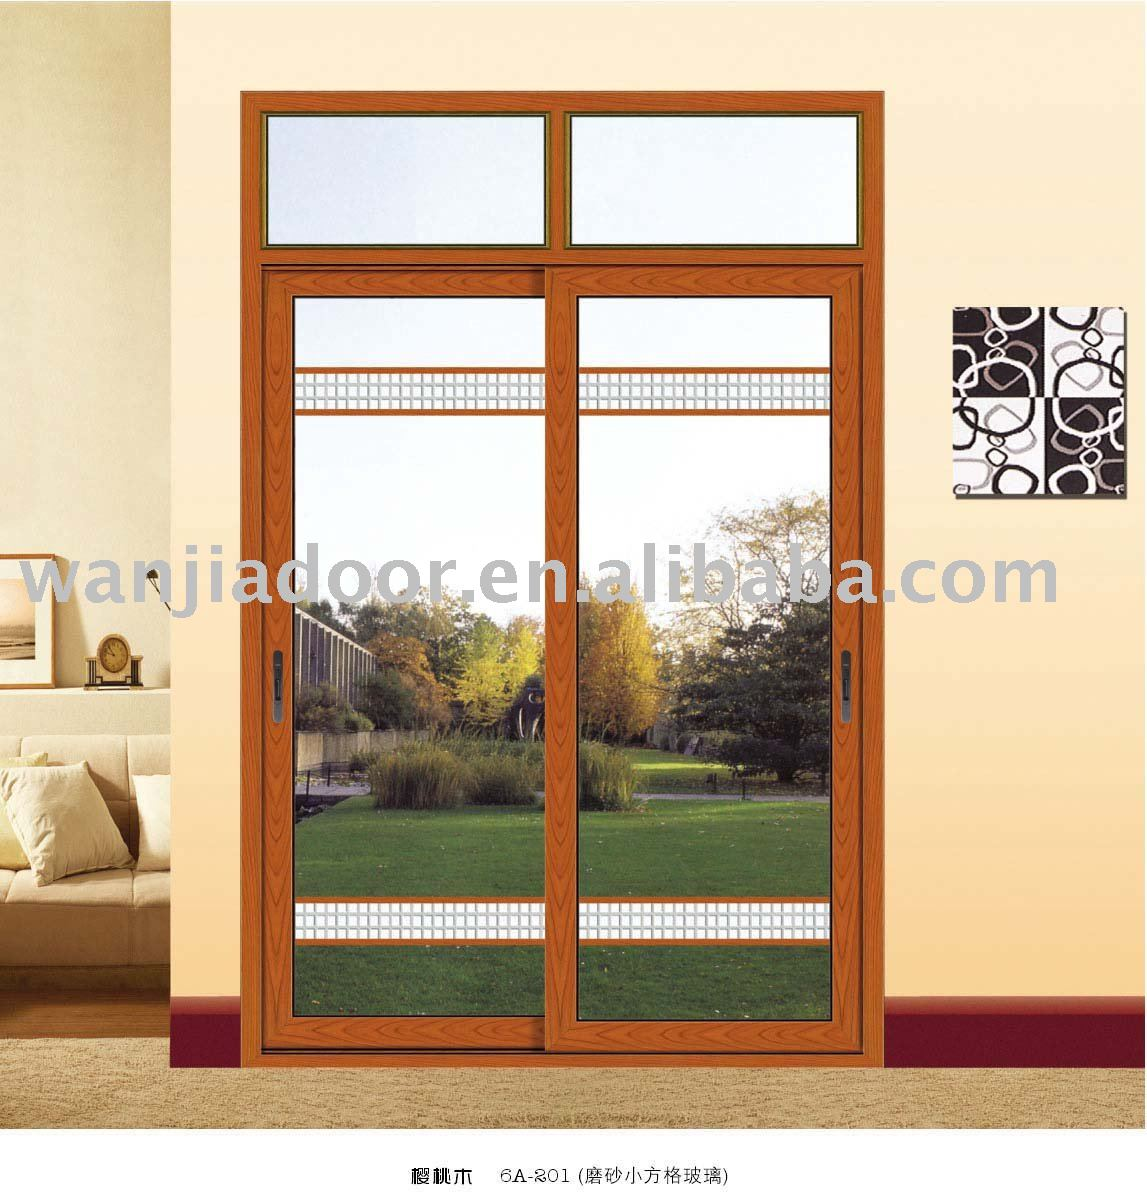 Design of doors and windows of house images for Widows and doors